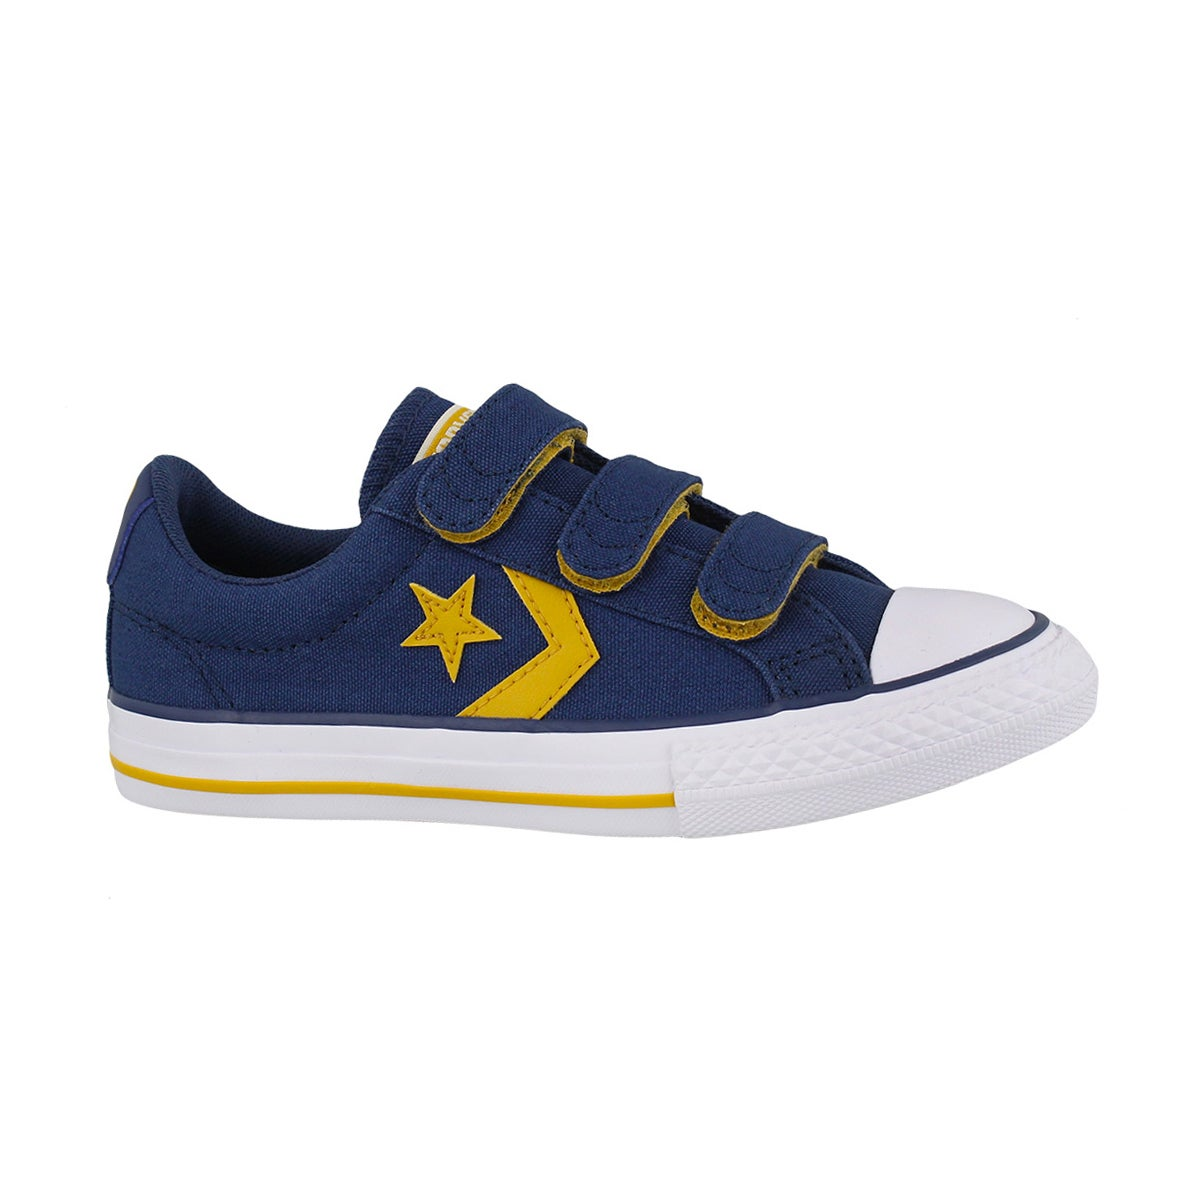 Boys' STAR PLAYER 3V navy/yellow/white sneakers